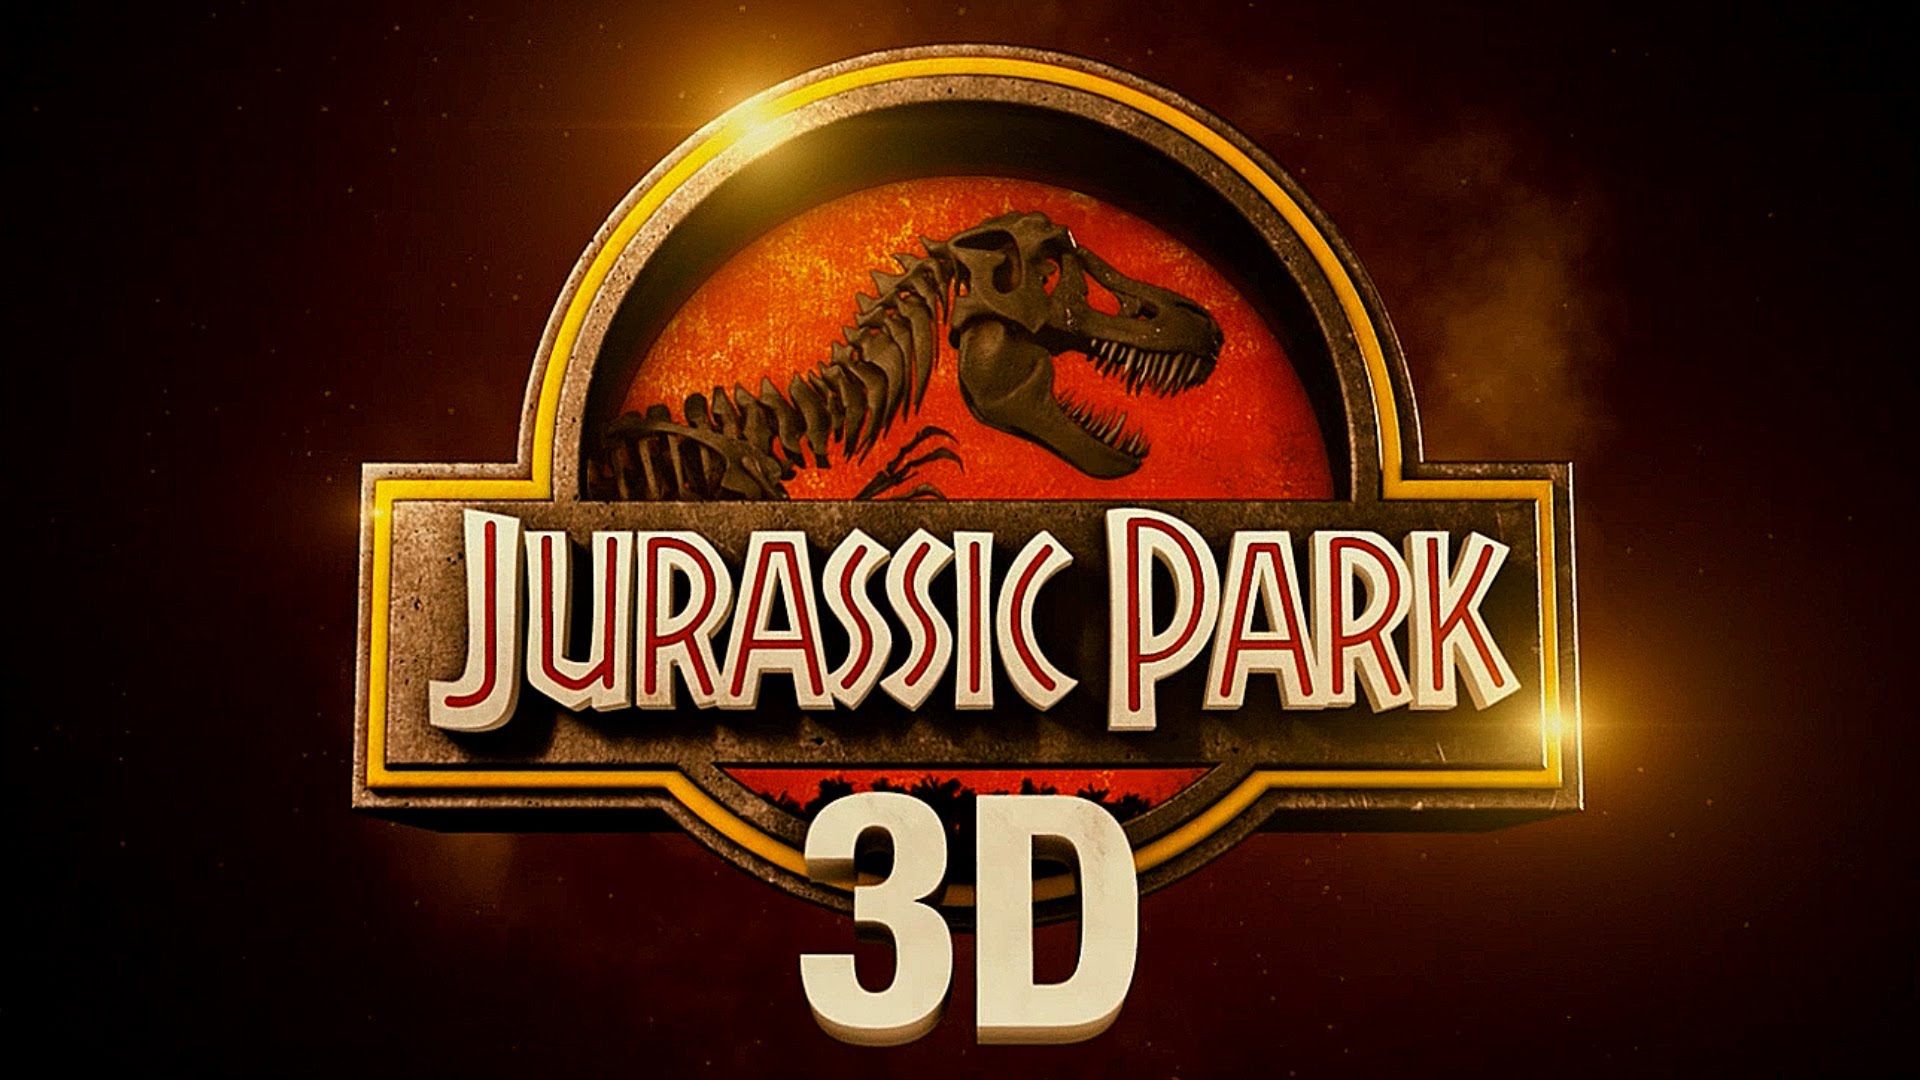 """JURASSIC PARK (3D)"" 